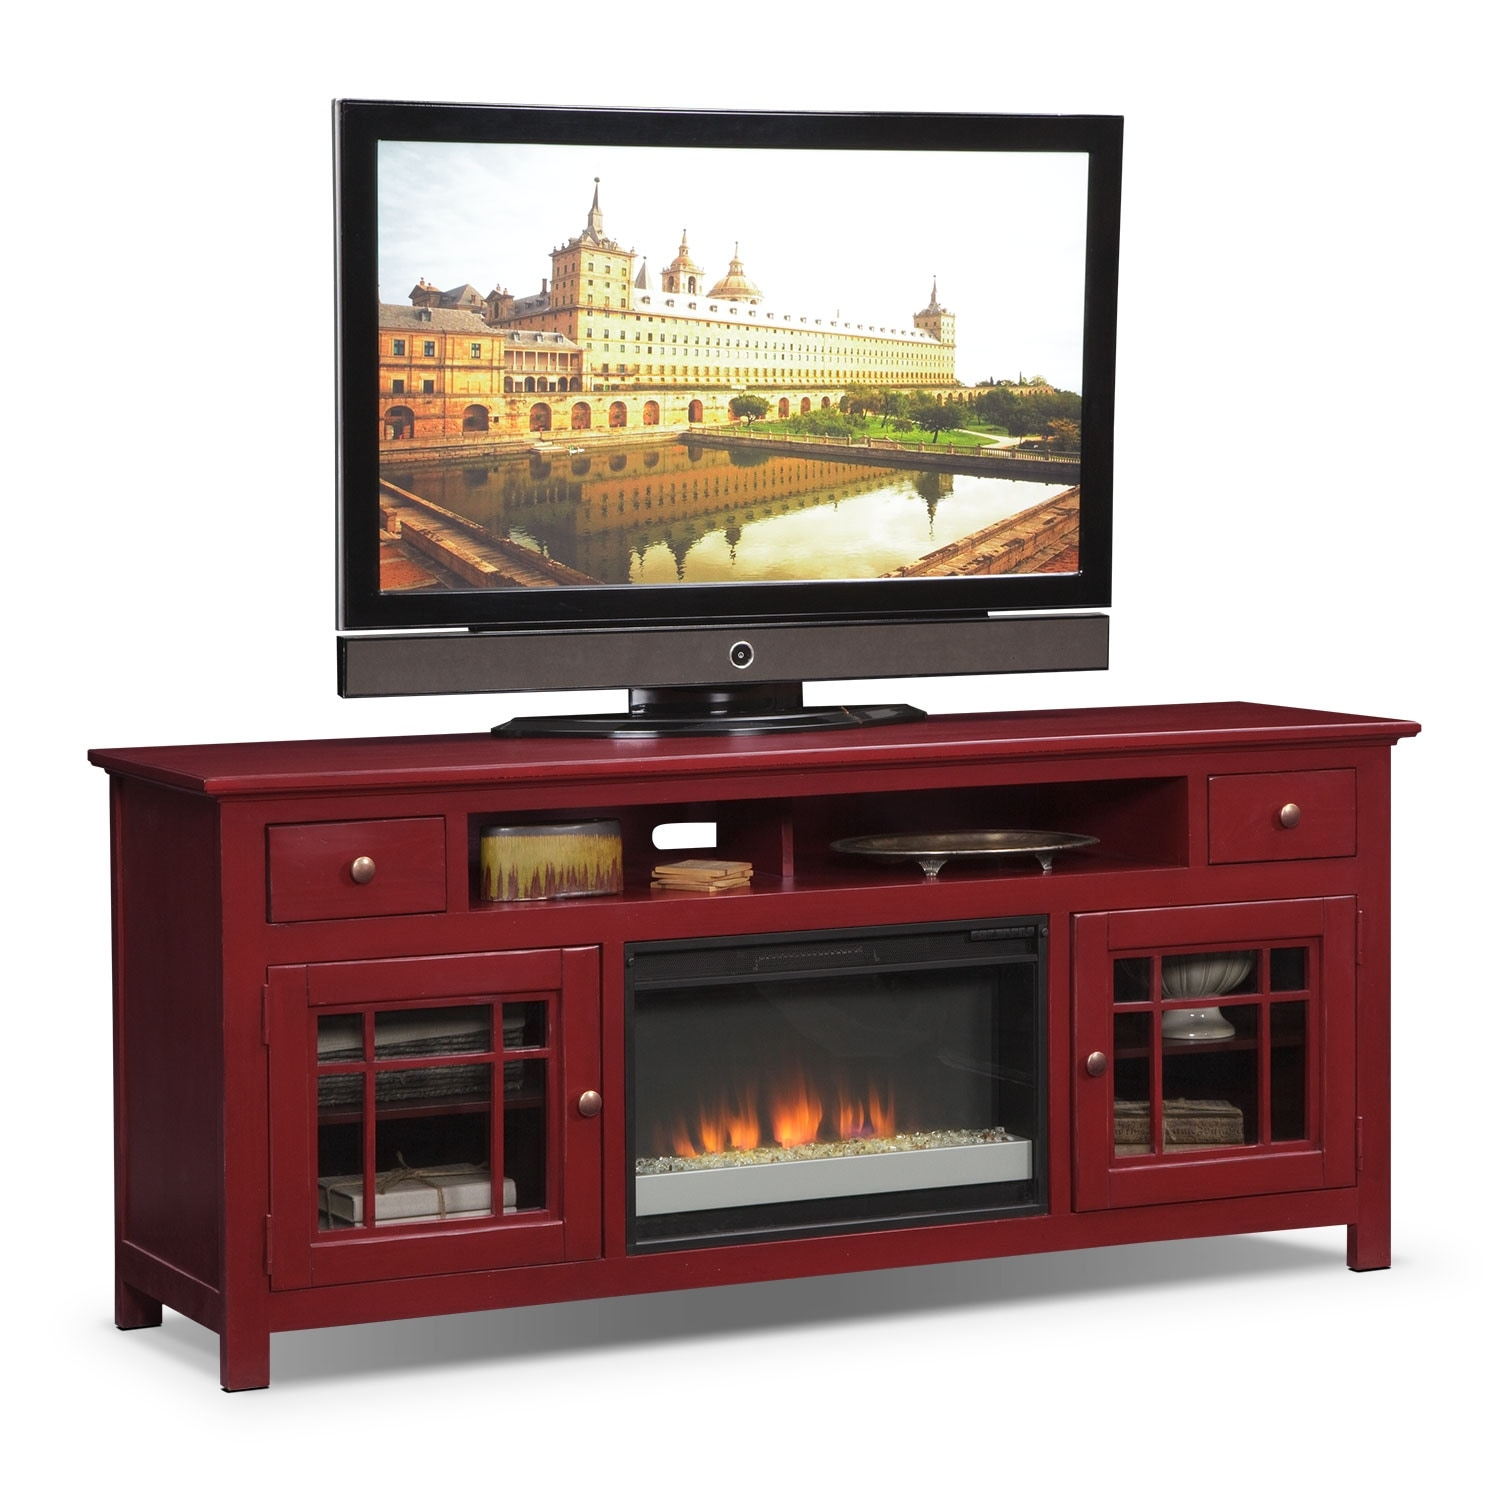 merrick  tv stand  red  value city furniture - merrick  fireplace tv stand with contemporary insert  red